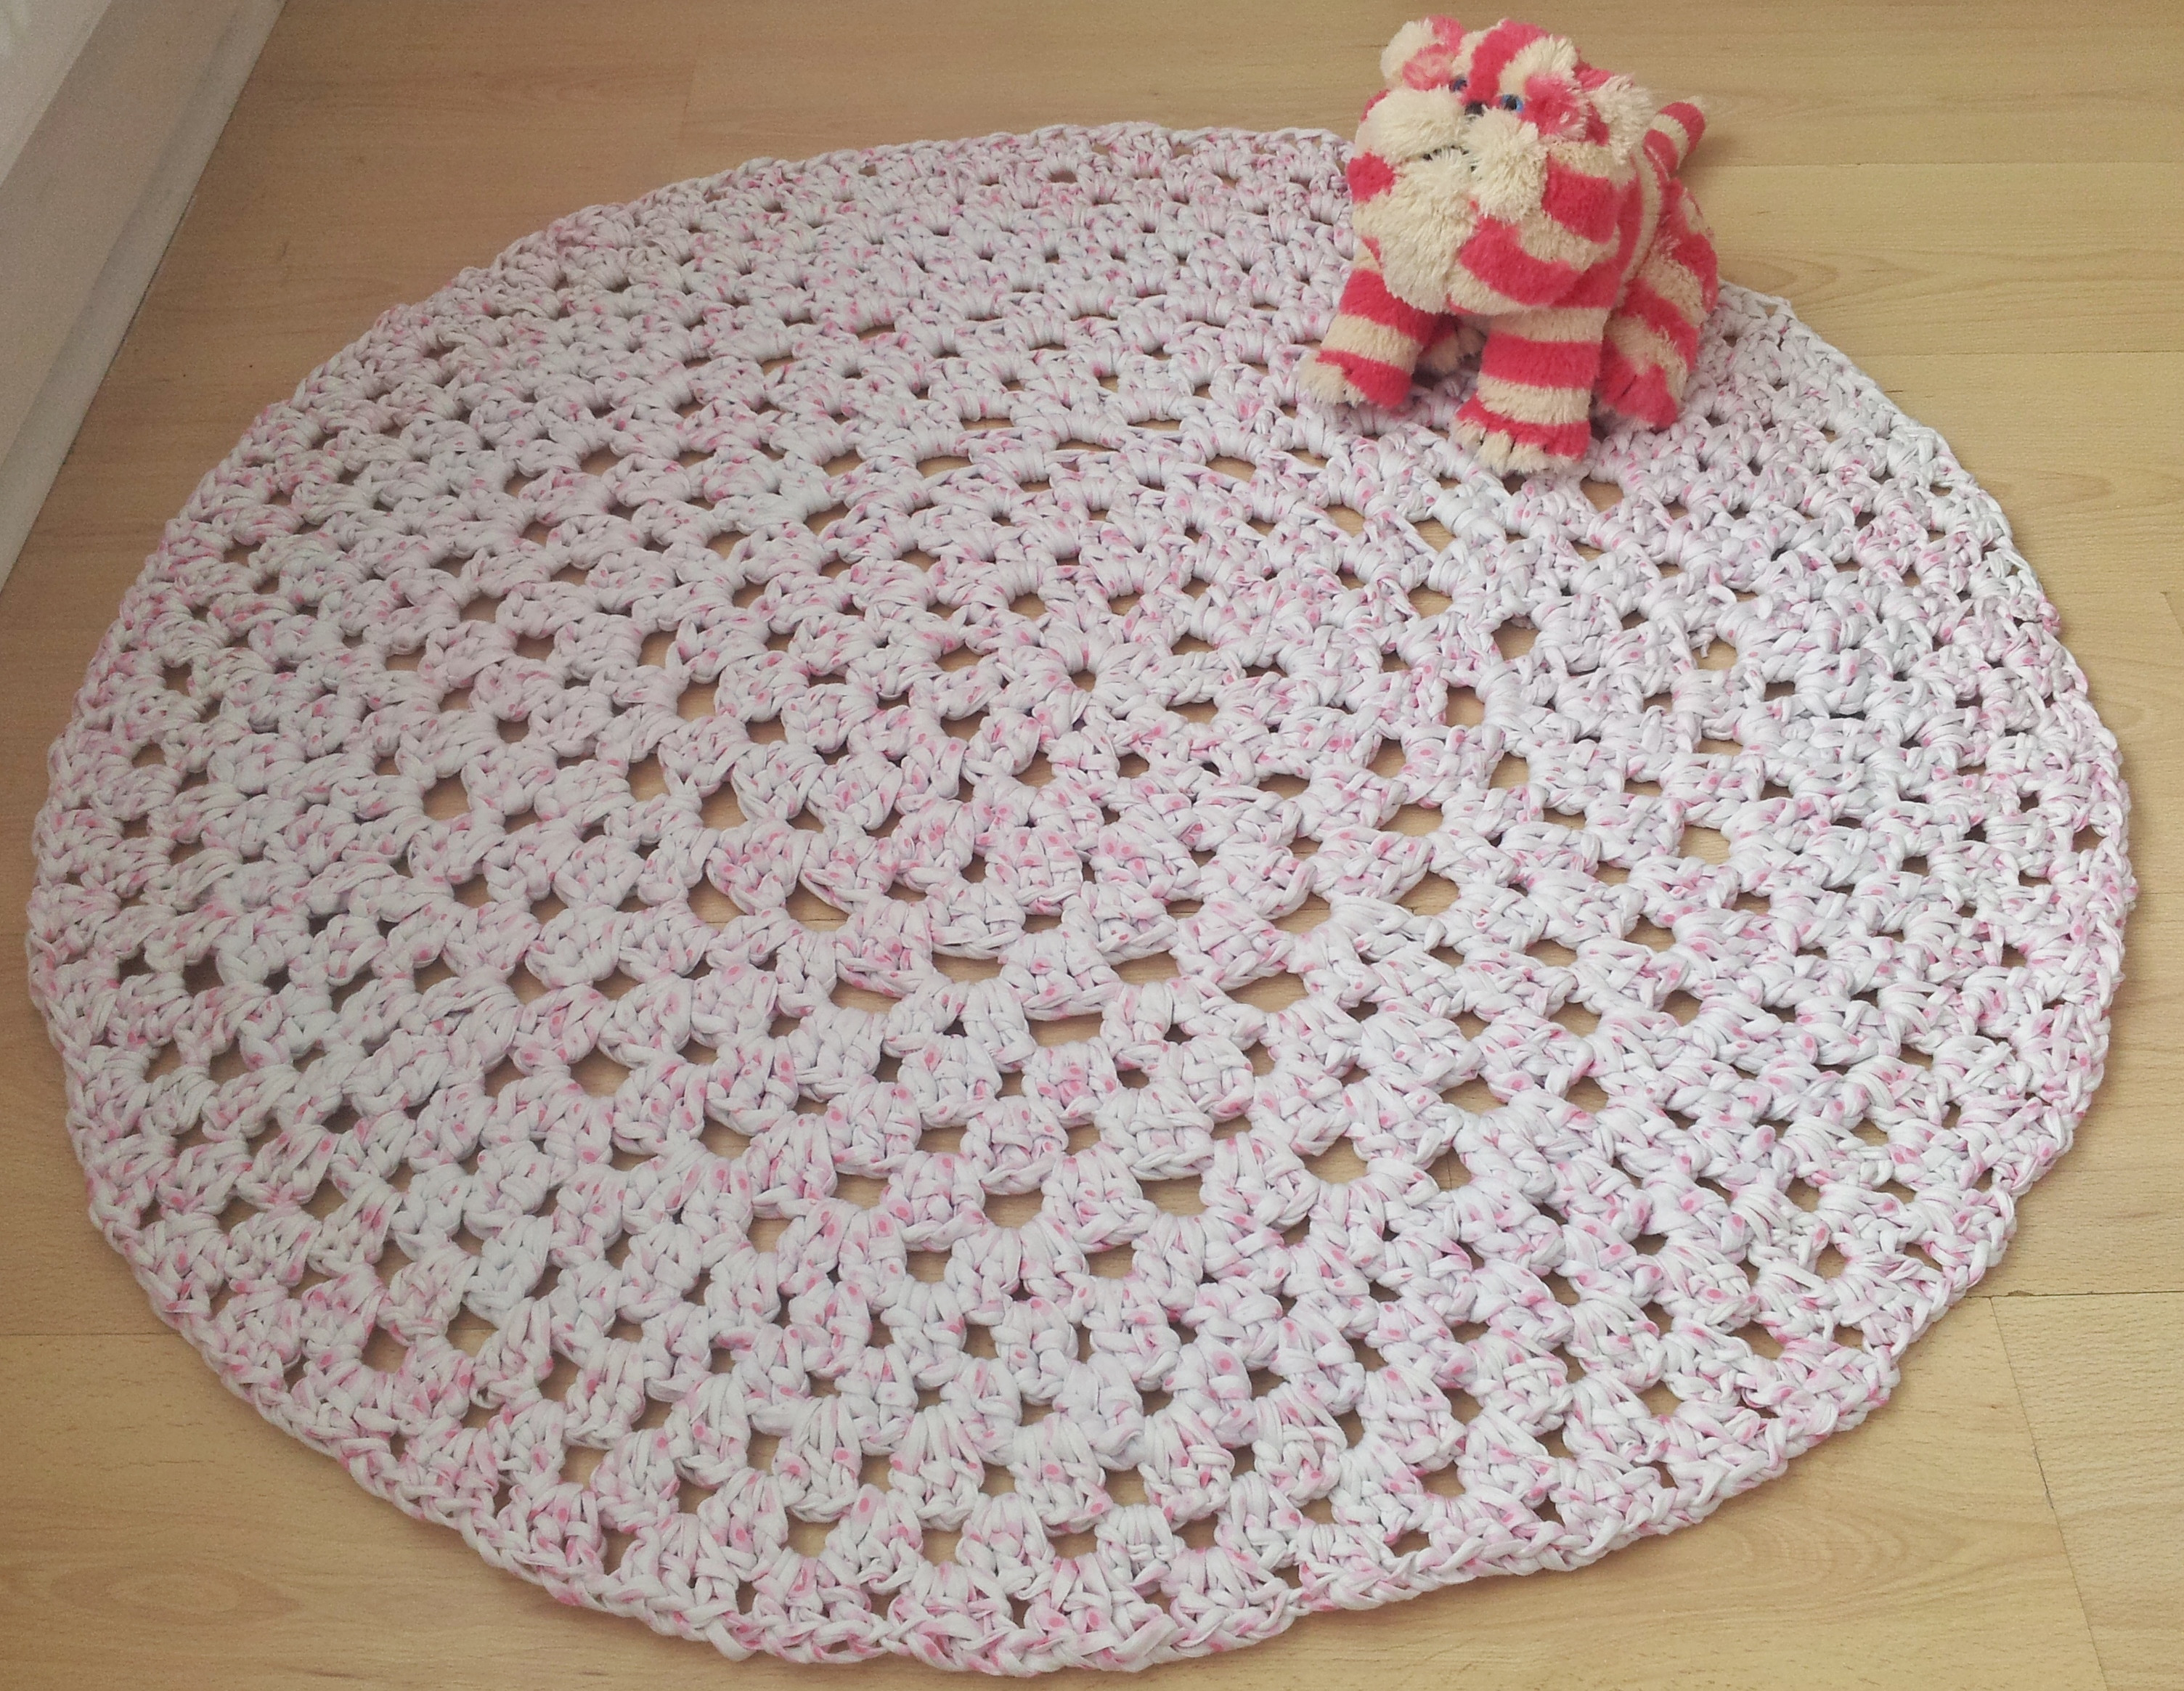 Crochet Oval Rug Awesome 19 Crochet Rug Patterns Of Charming 49 Images Crochet Oval Rug